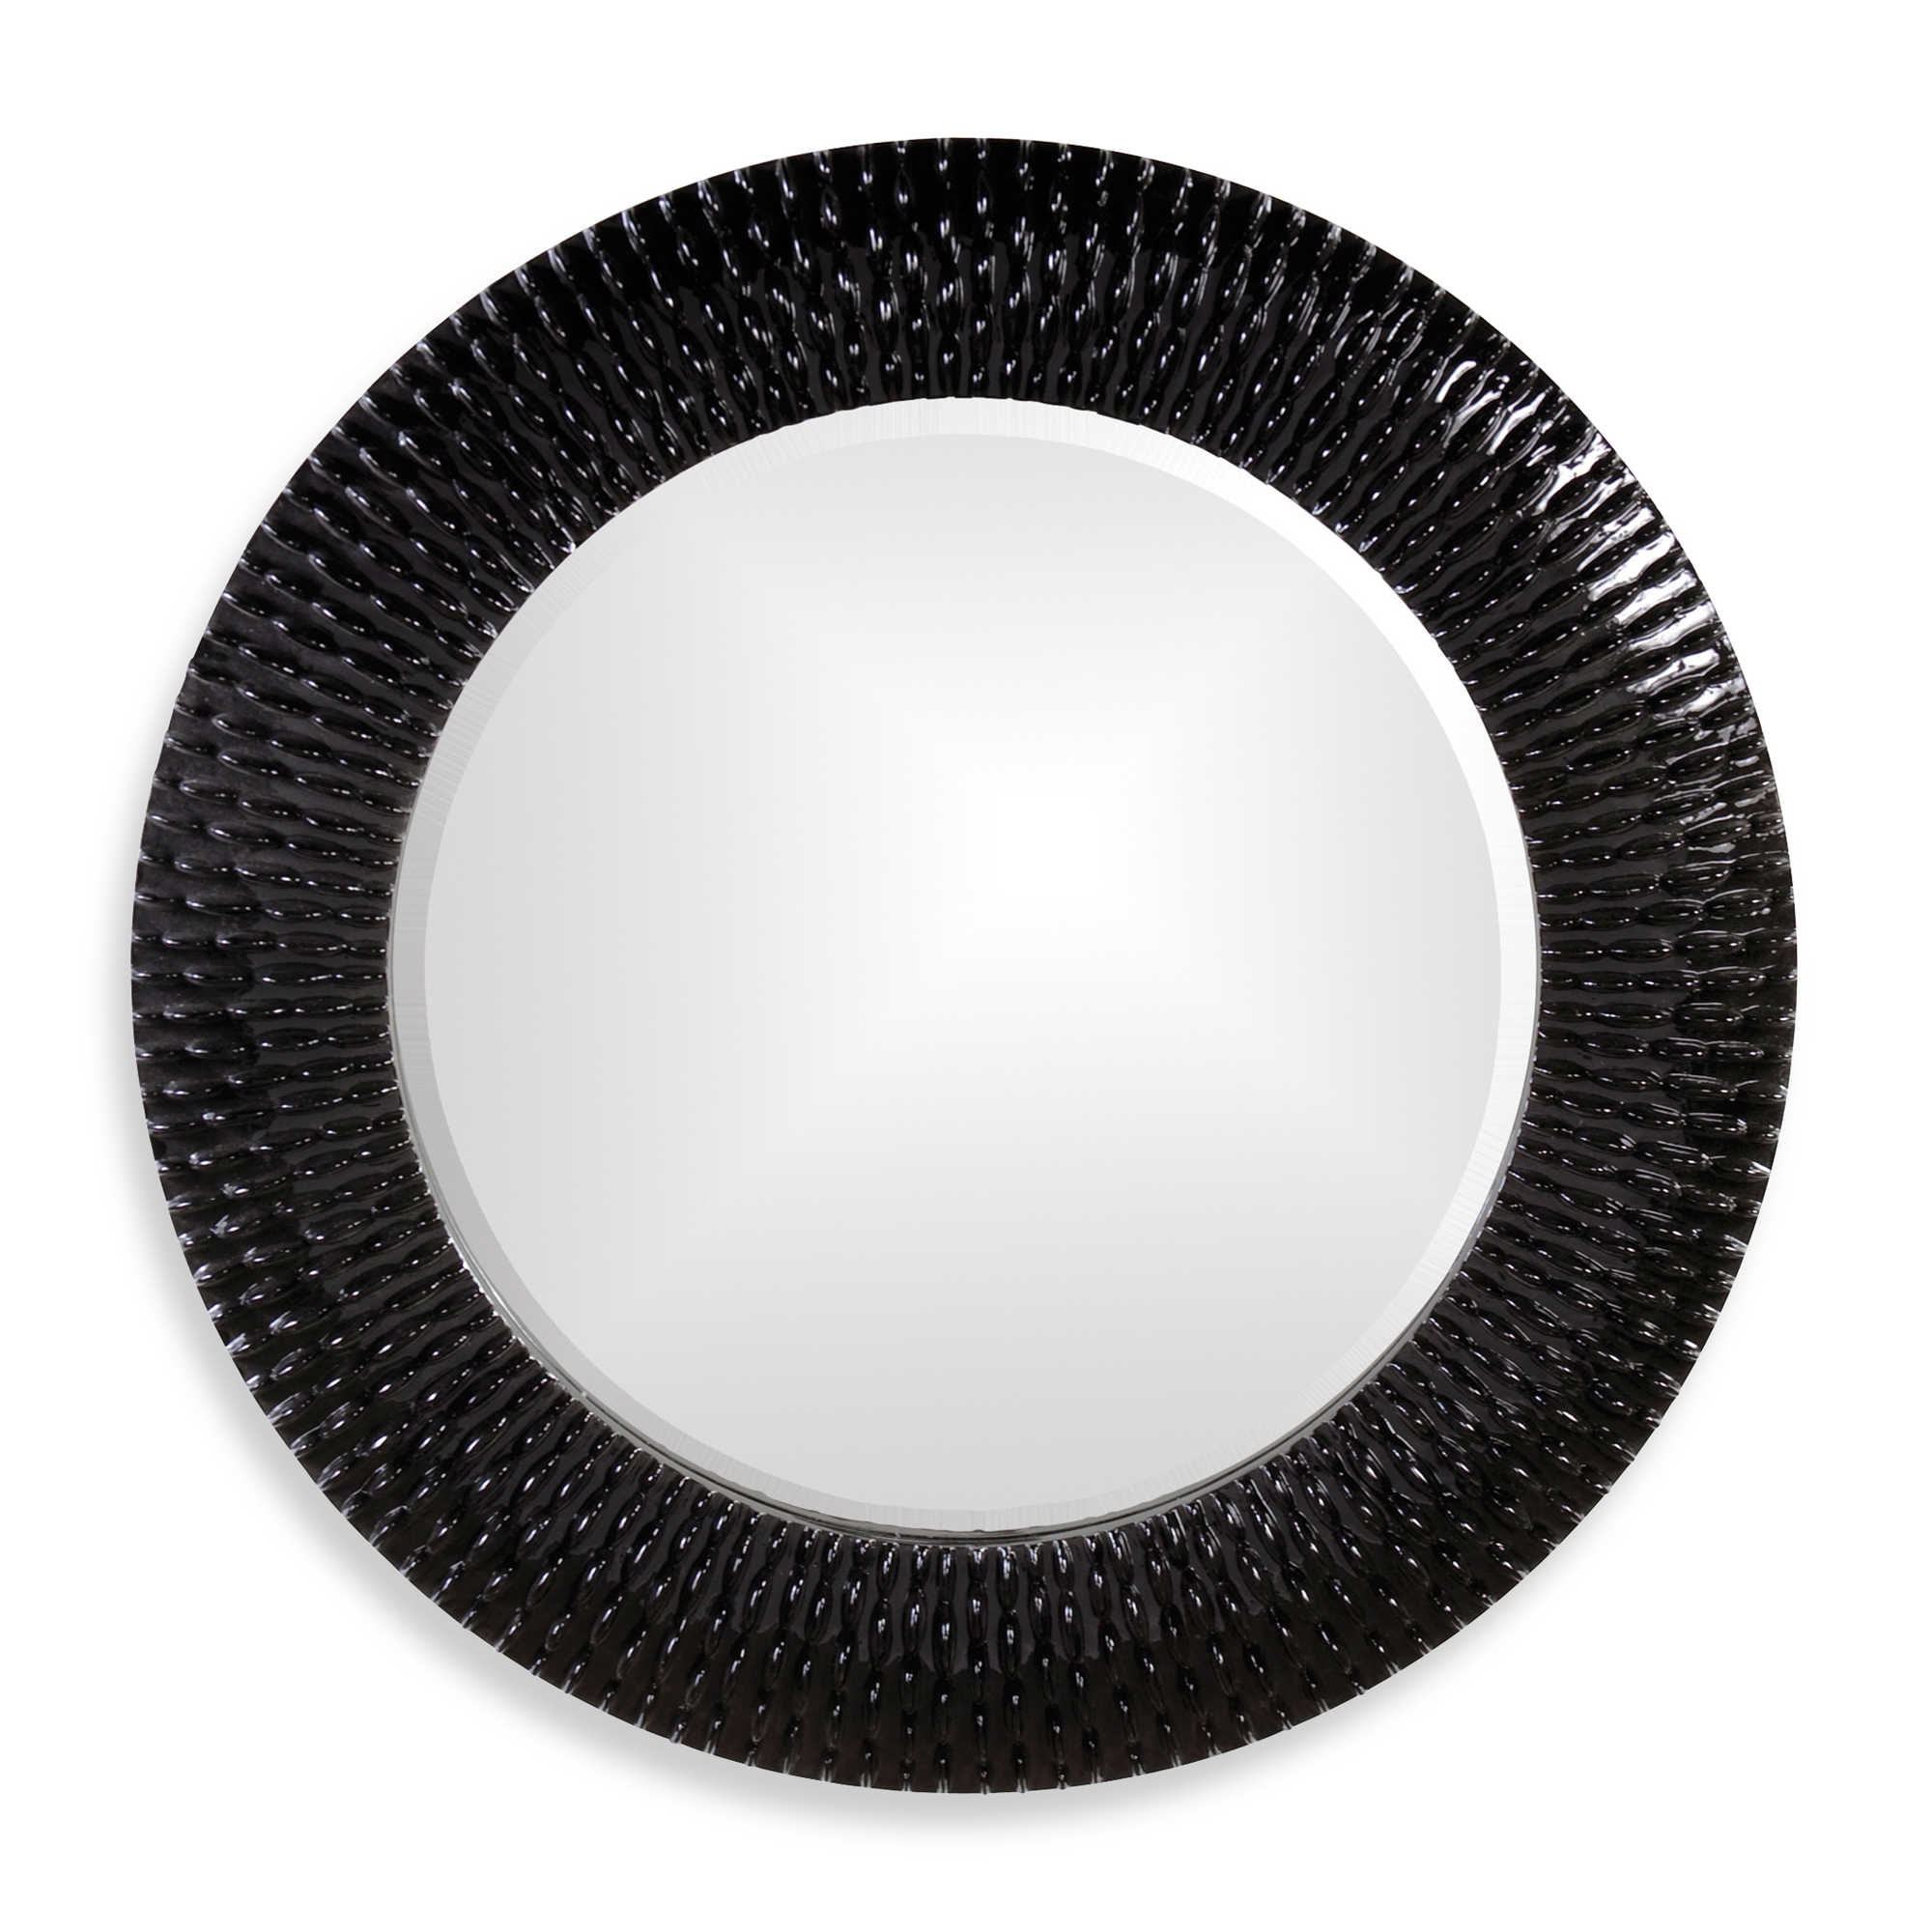 Black round mirror images for Round black wall mirror